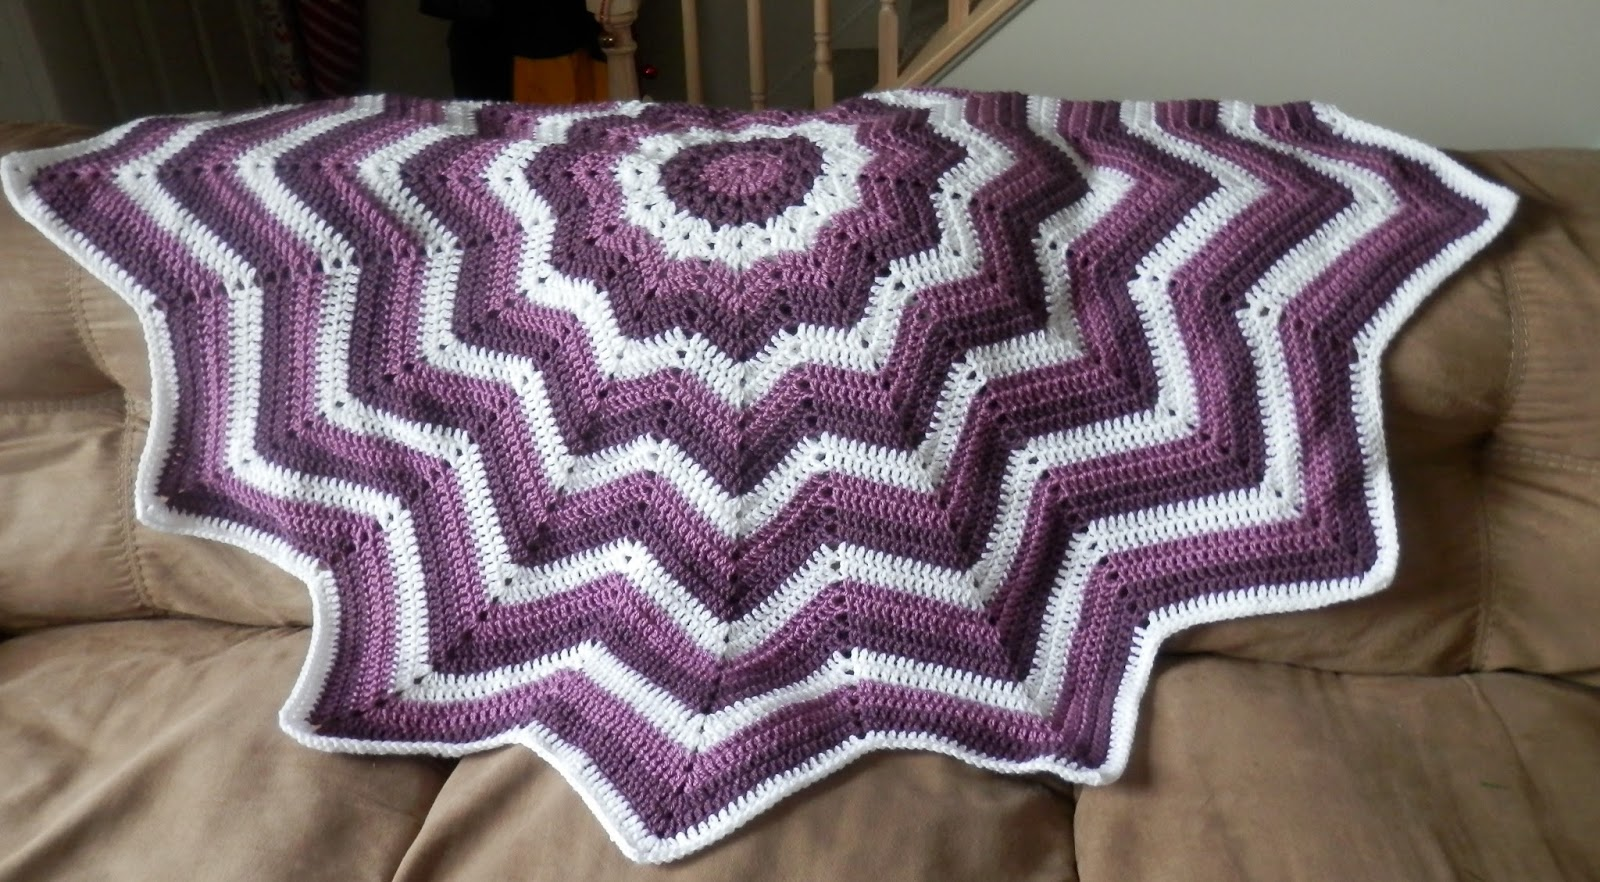 Karens Crocheted Garden of Colors: 12 Point Round Ripple Afghan